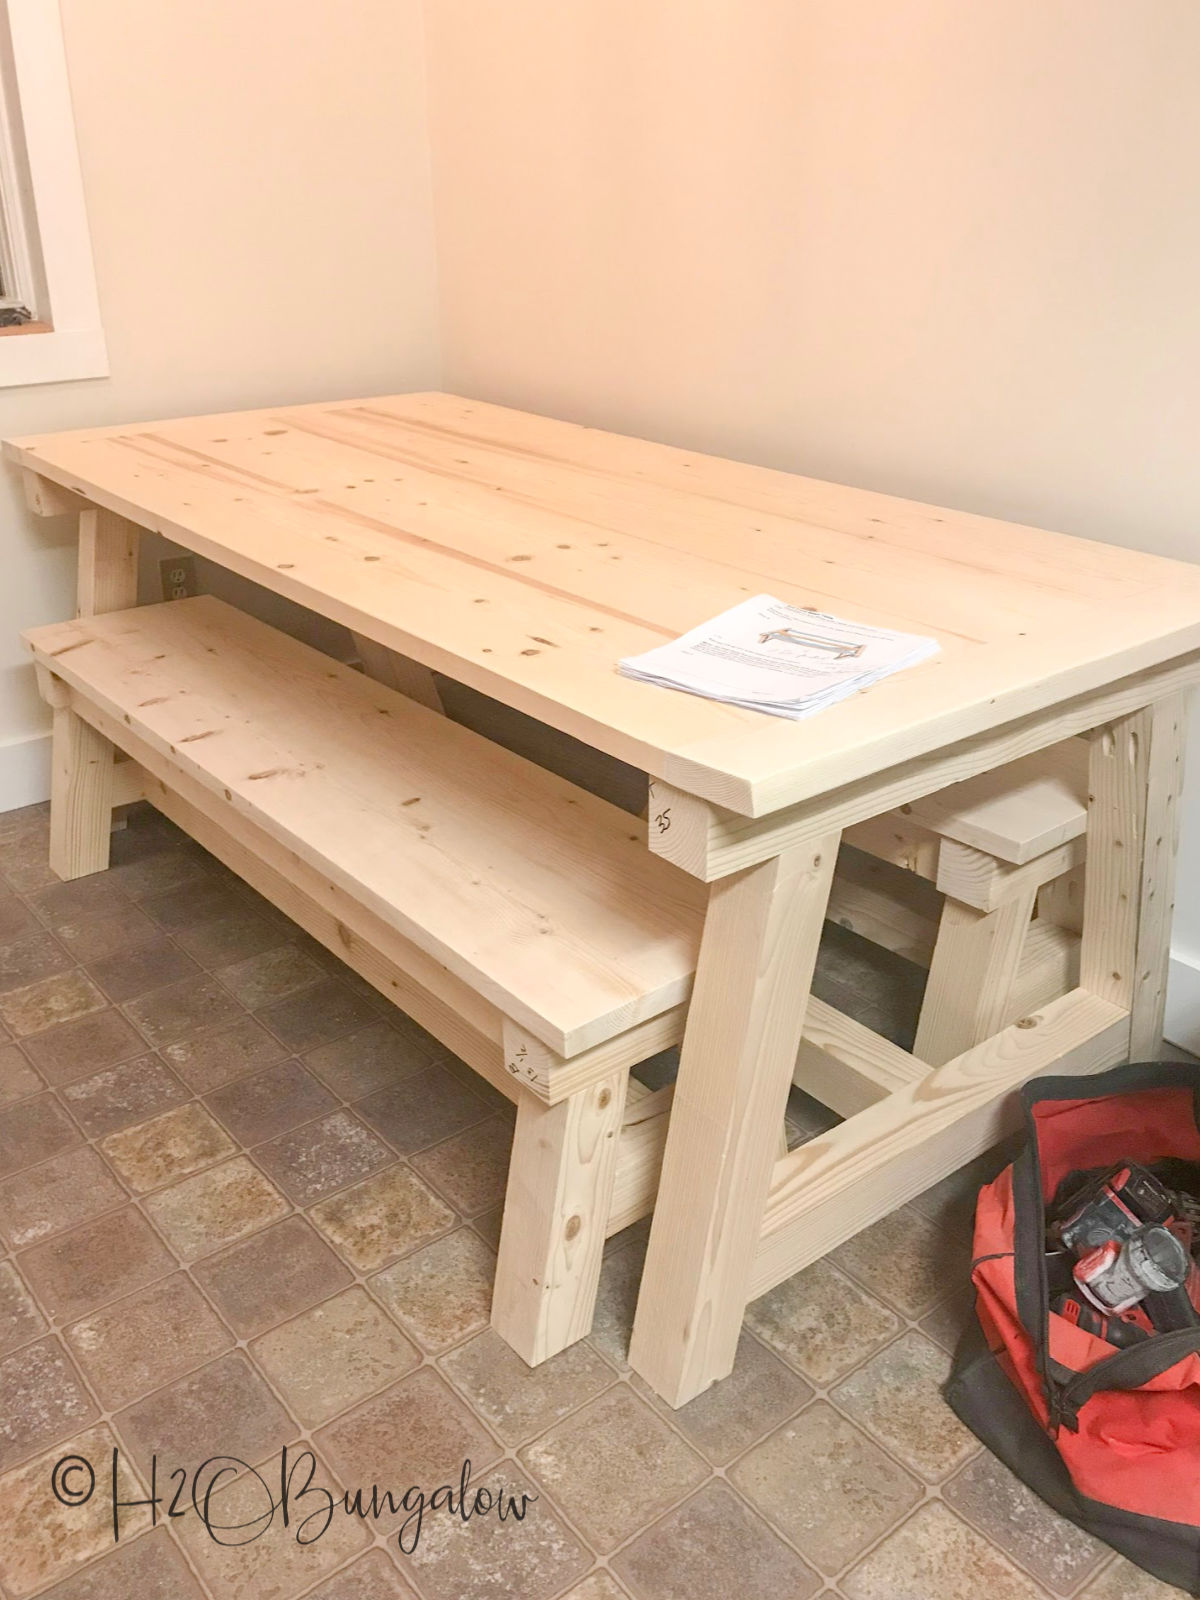 Tremendous How To Build A Diy Farmhouse Table H2Obungalow Dailytribune Chair Design For Home Dailytribuneorg